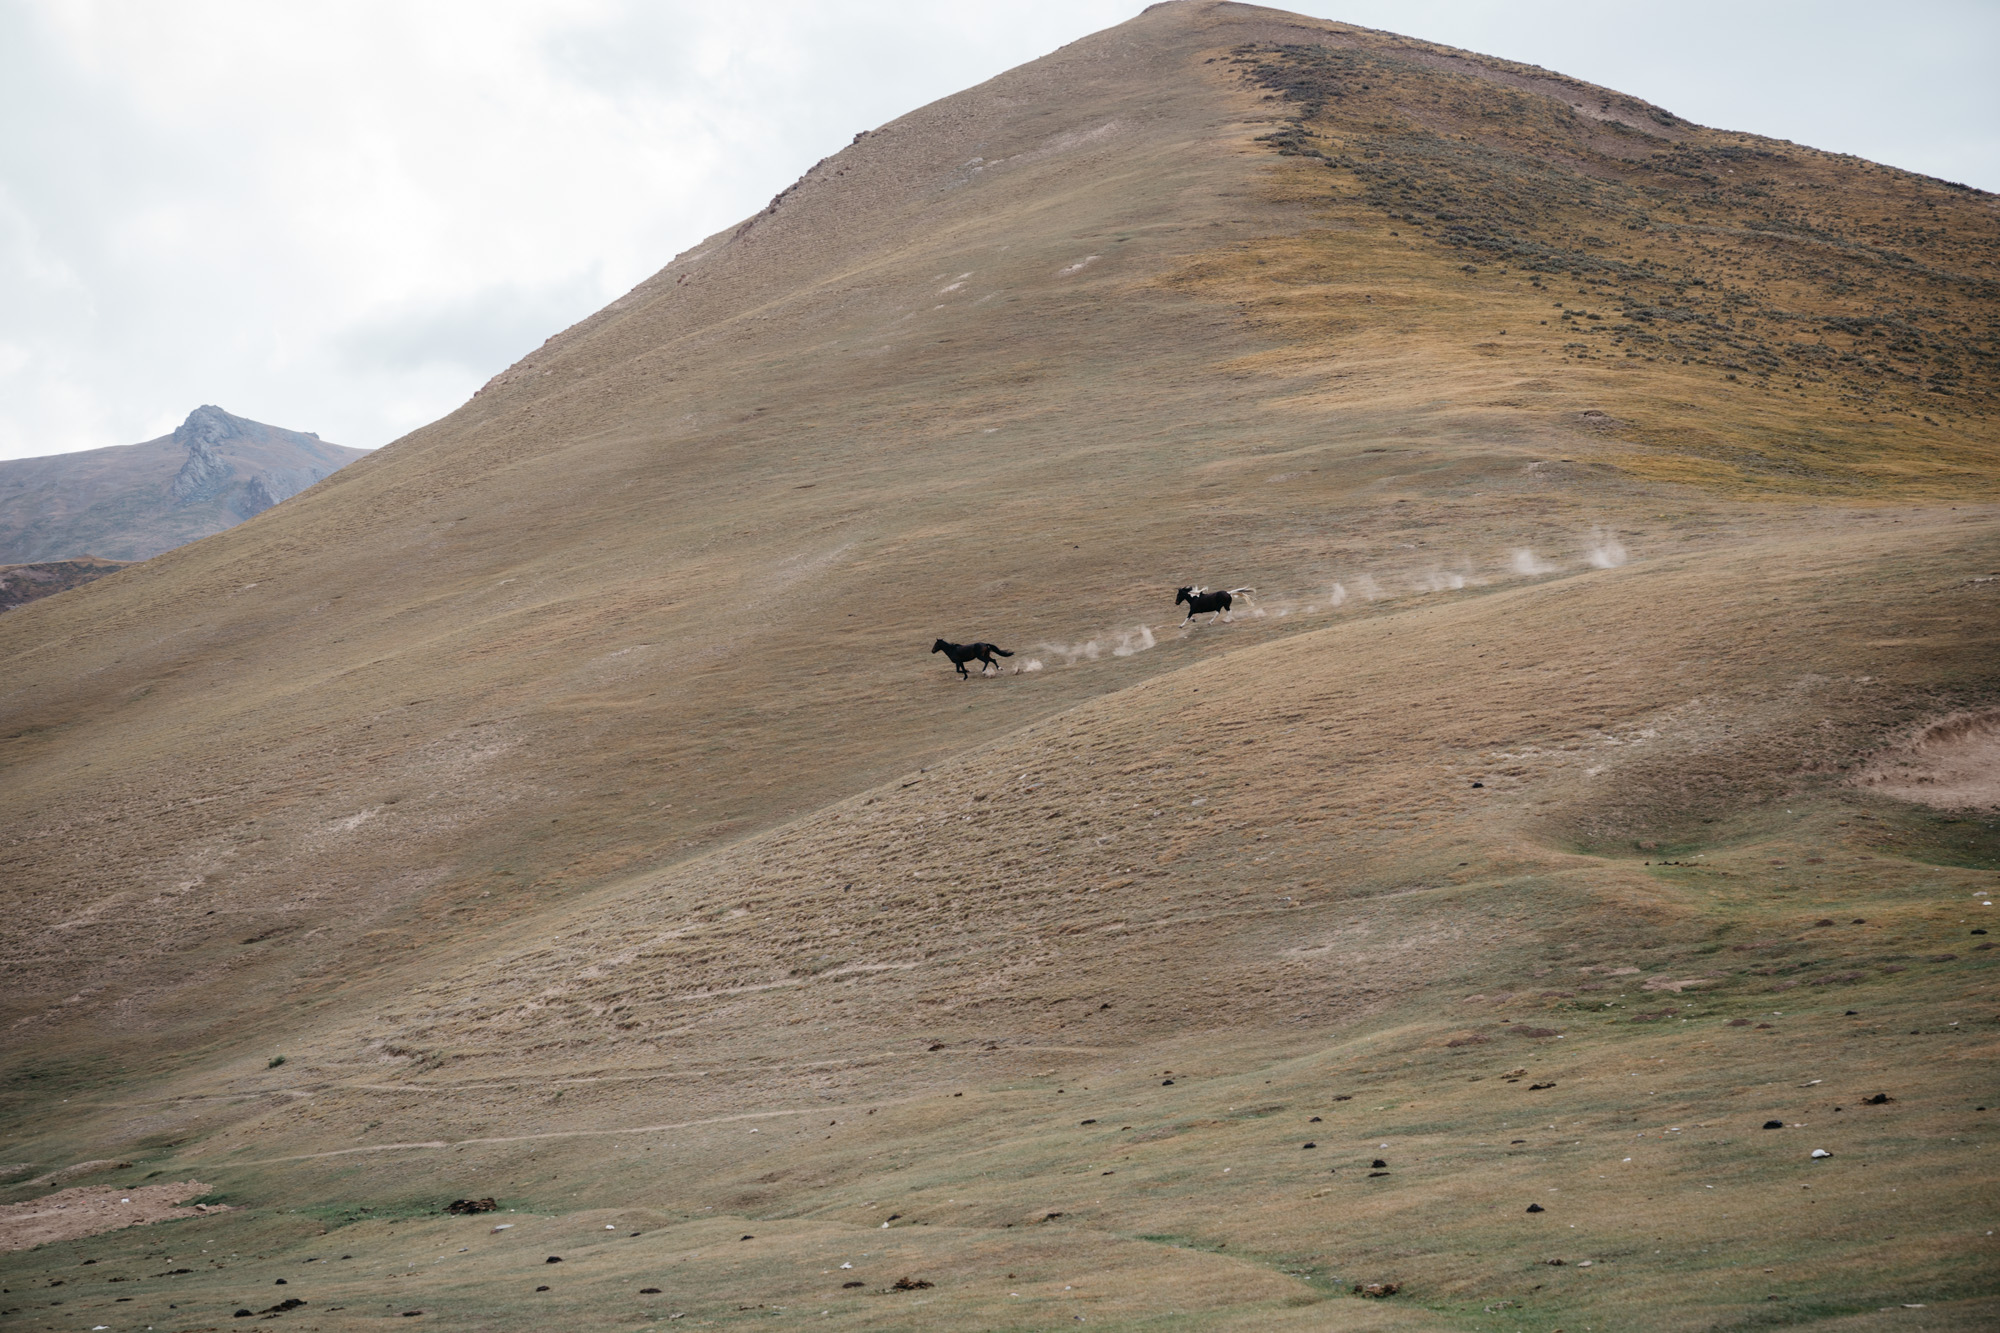 Horses belonging to the nearby villagers galloping through the mountains.